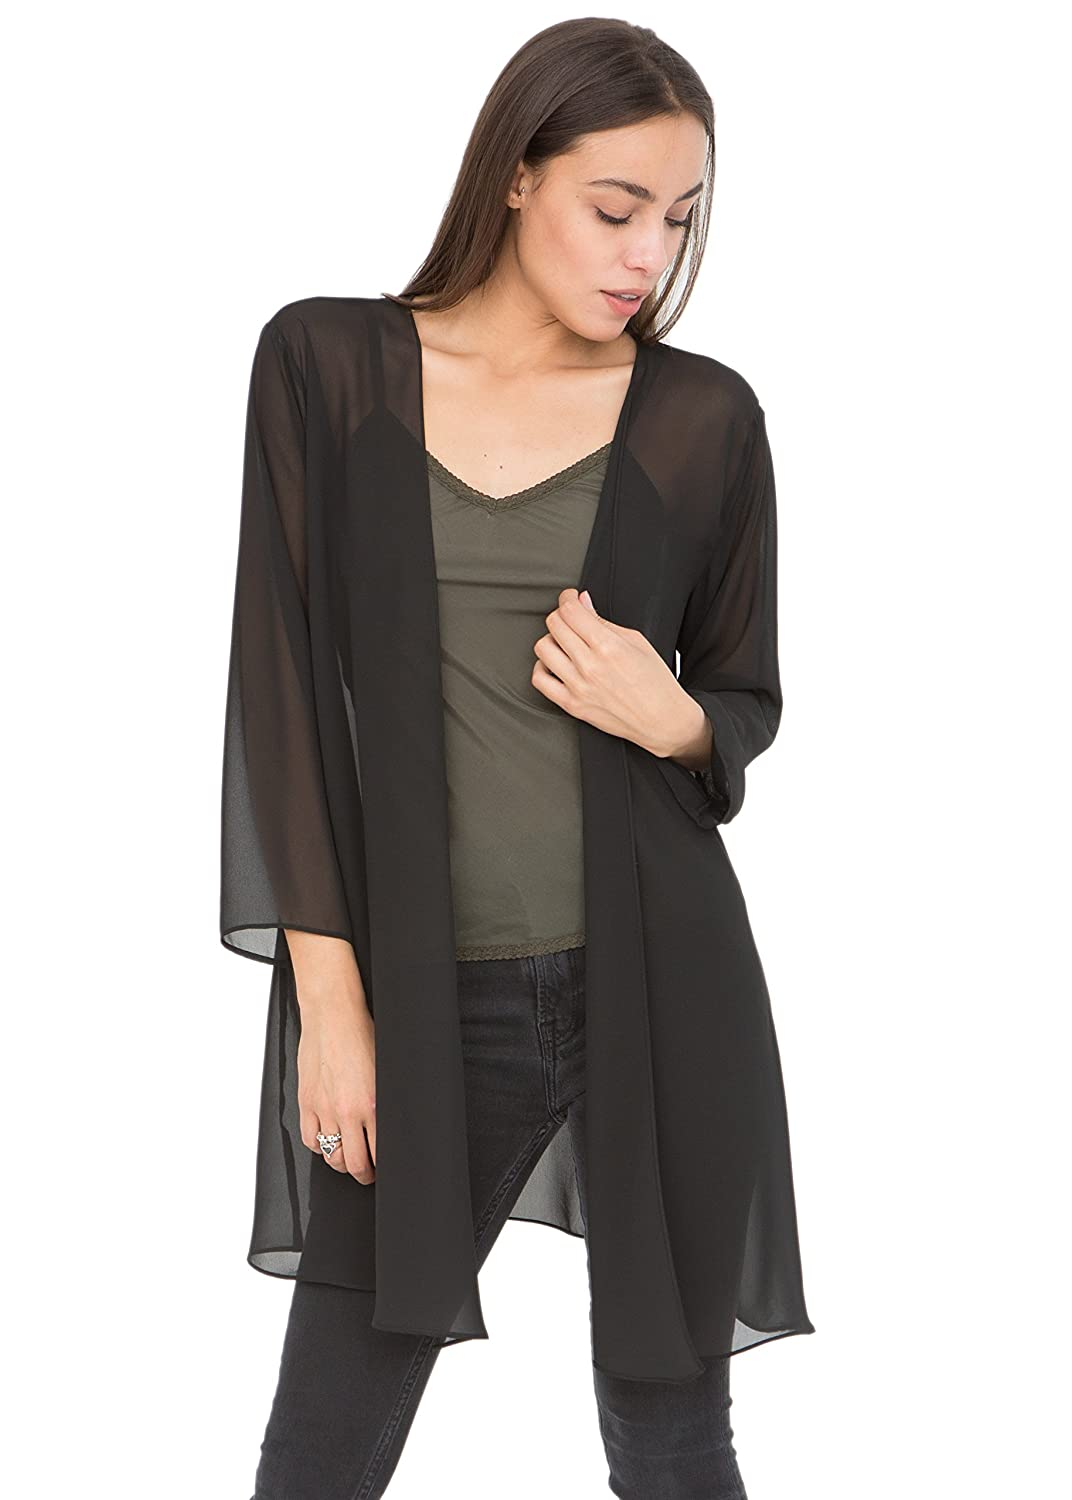 Elegant Sheer Longline Cardigan Black at Amazon Women's Clothing ...